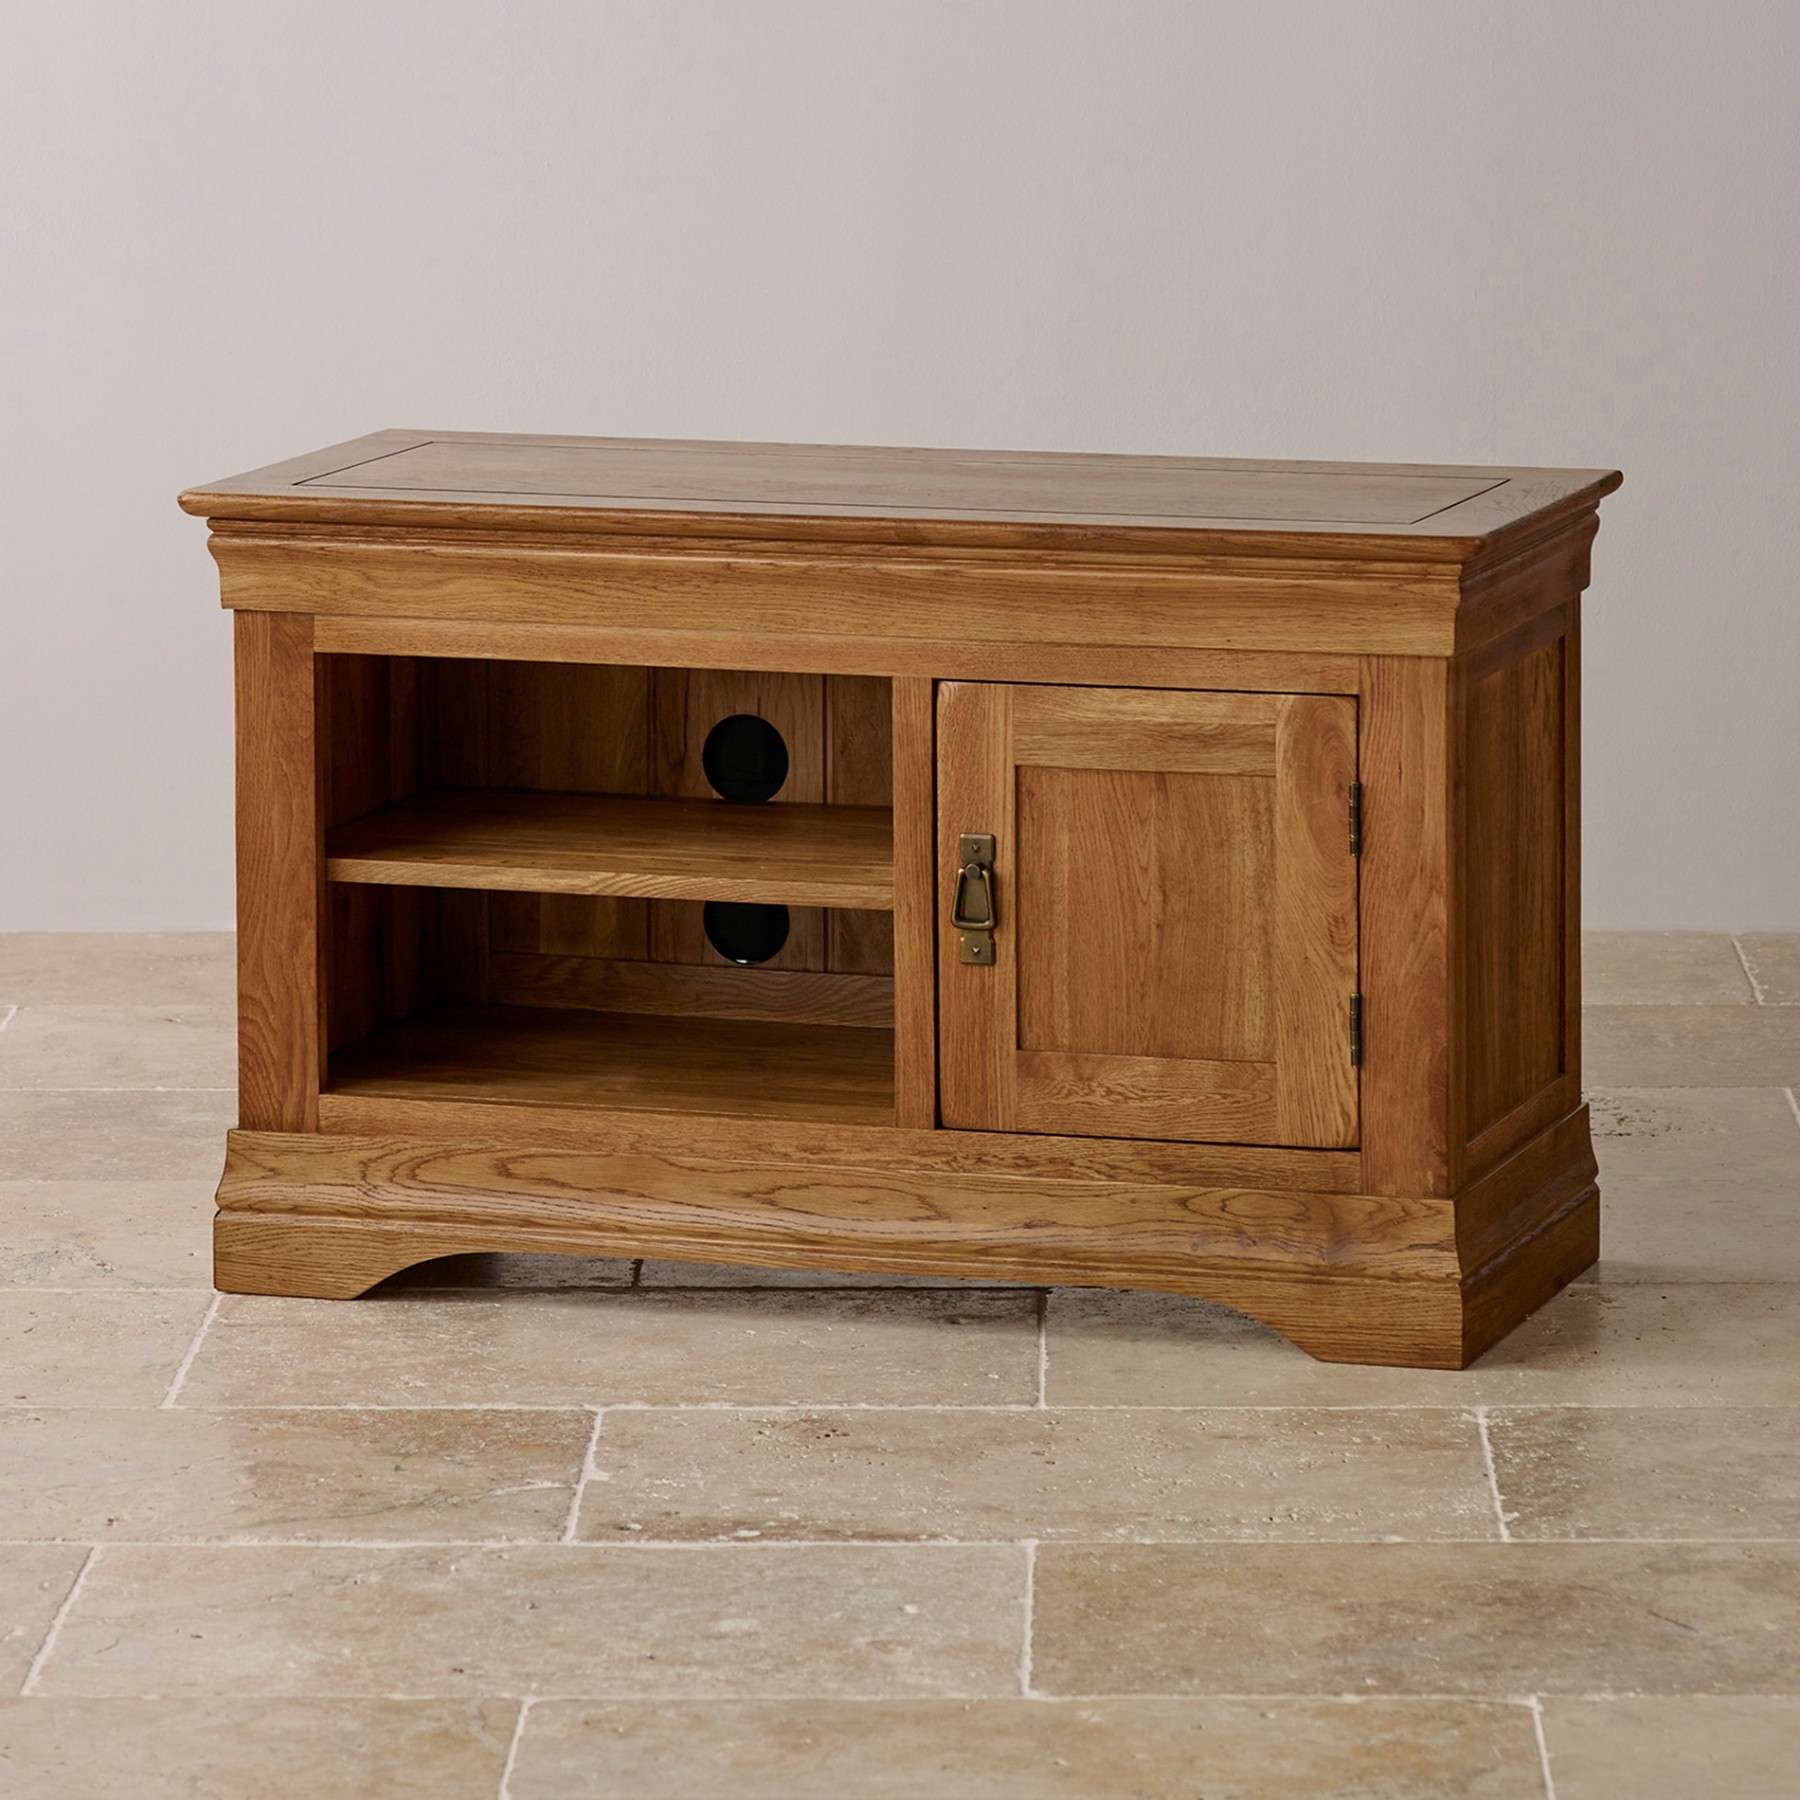 French Farmhouse Rustic Solid Oak Small Tv Stand Oak Furniture Land Intended For Rustic Oak Tv Stands (View 13 of 15)